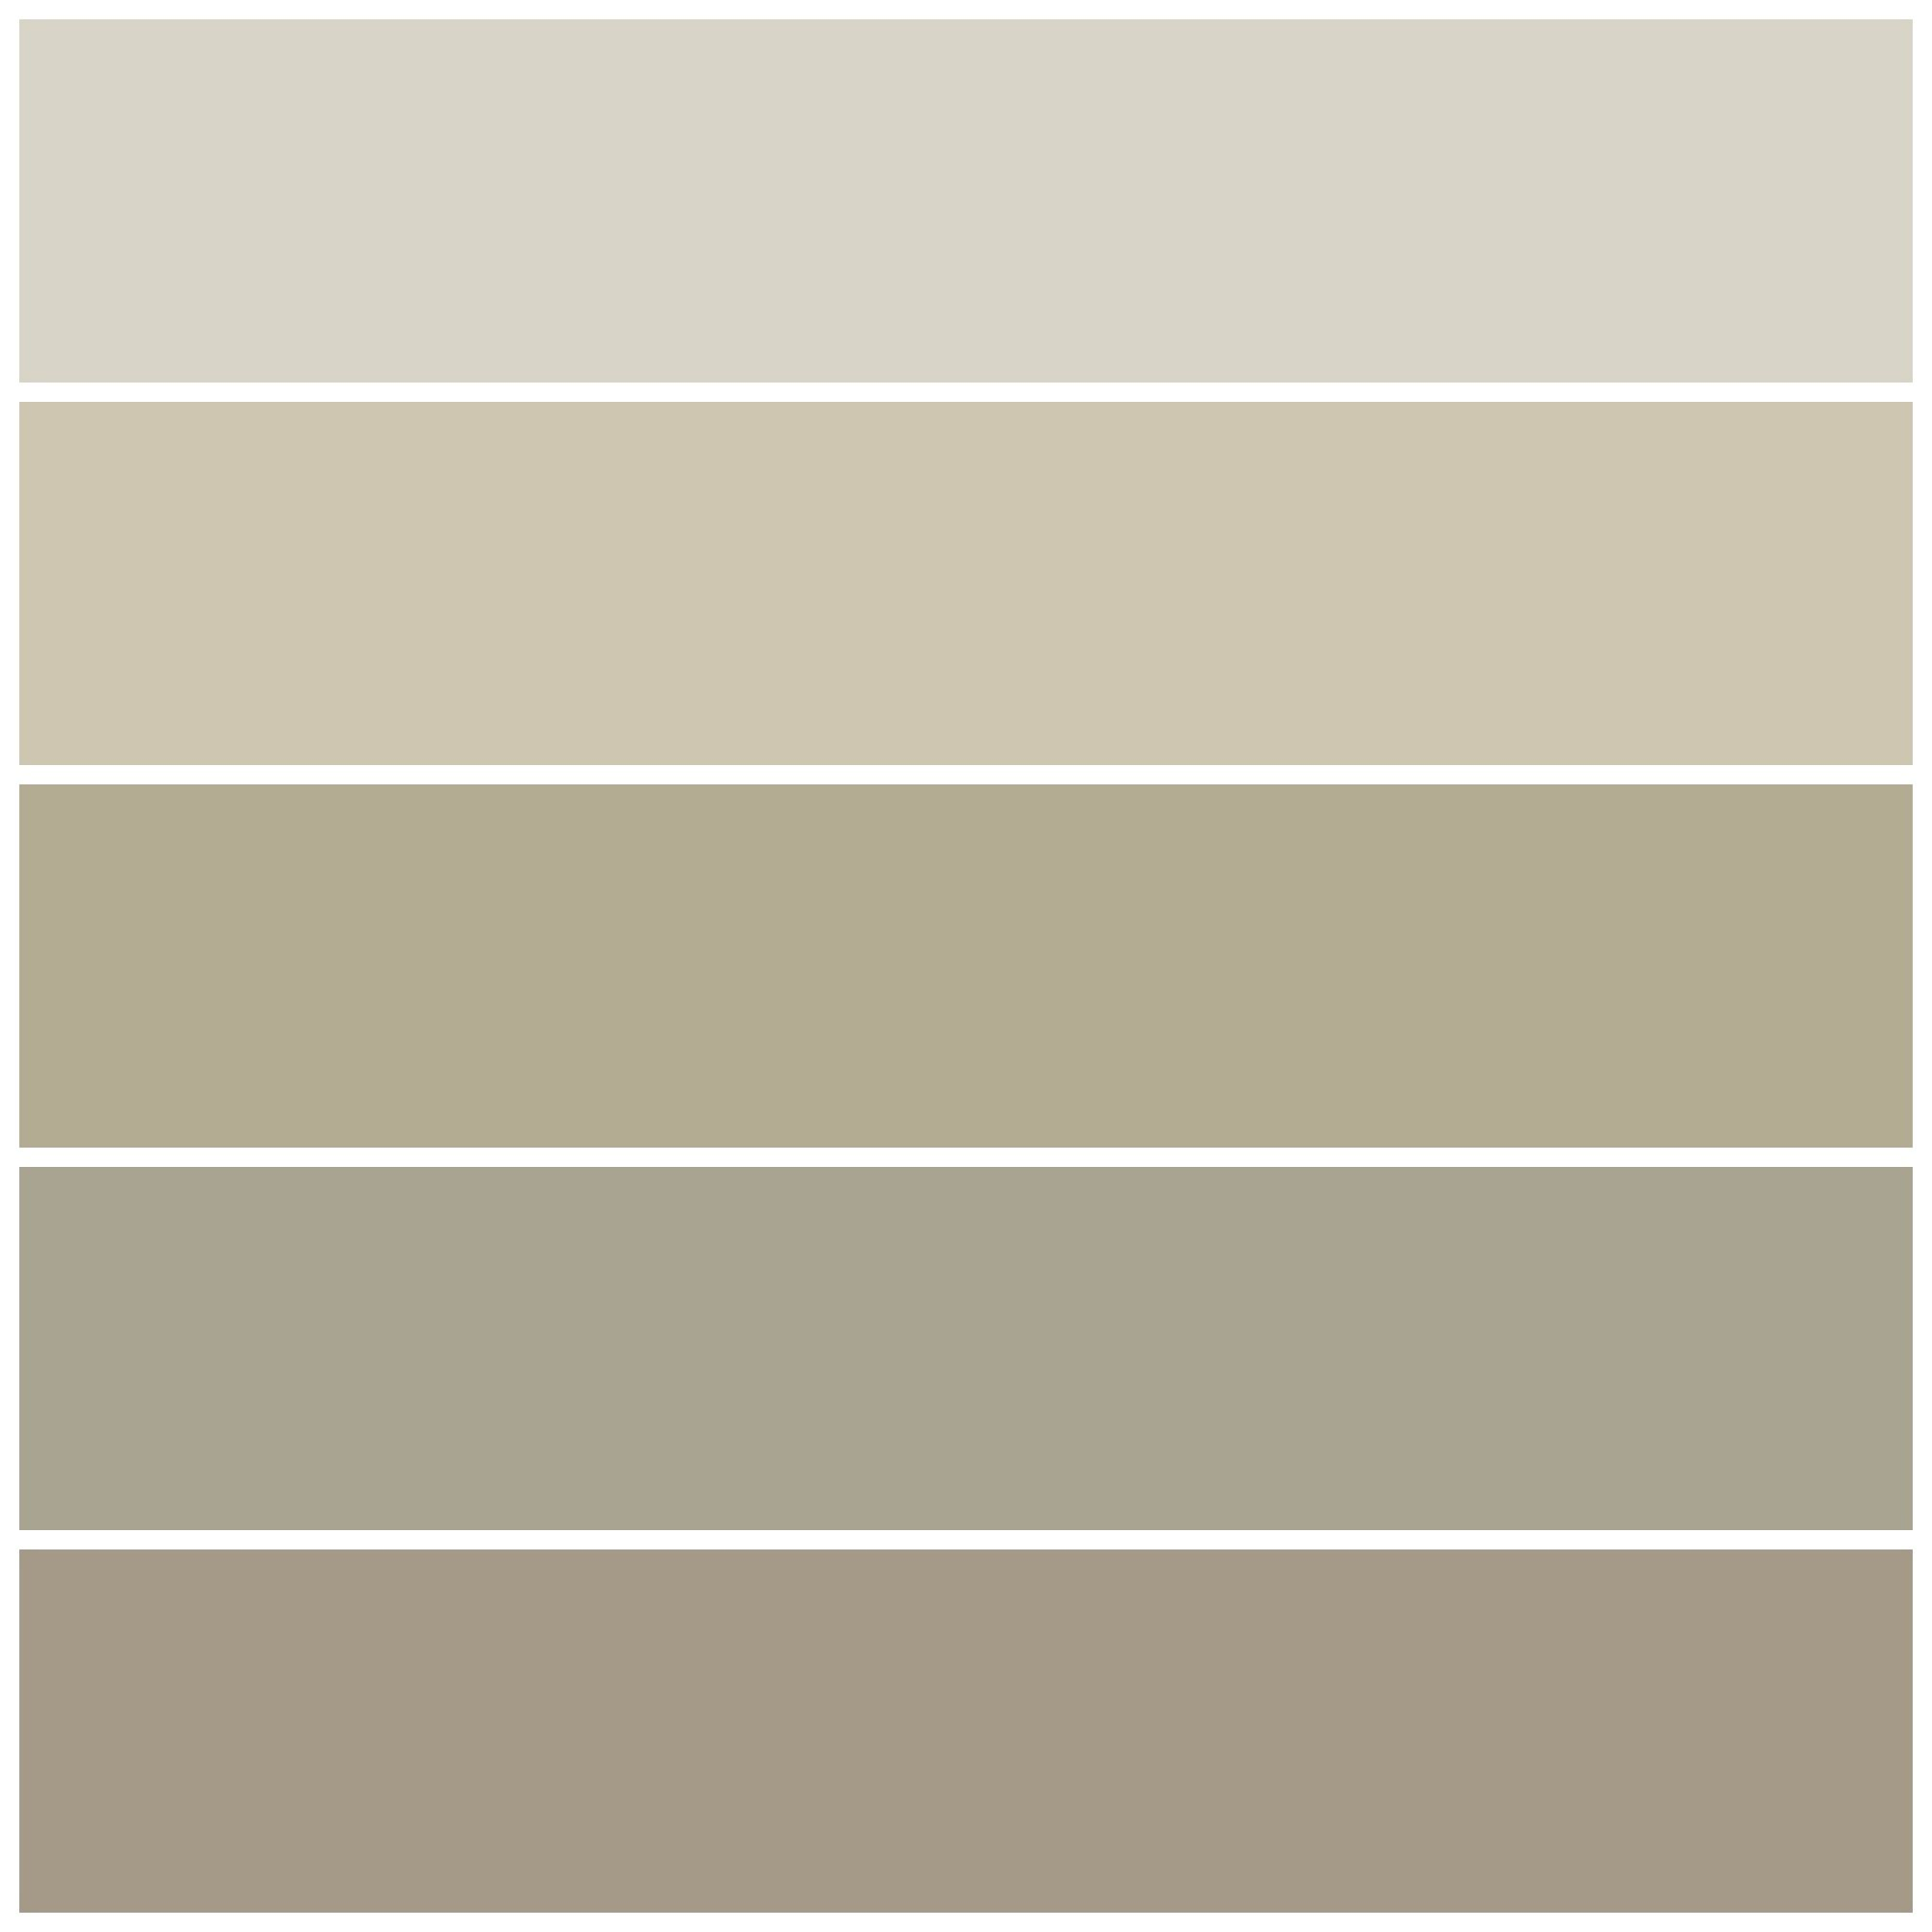 Joseph 39 s para paints colours bathroom p5217 24 back to camp eggshell entry stairwell living Paint wall colours